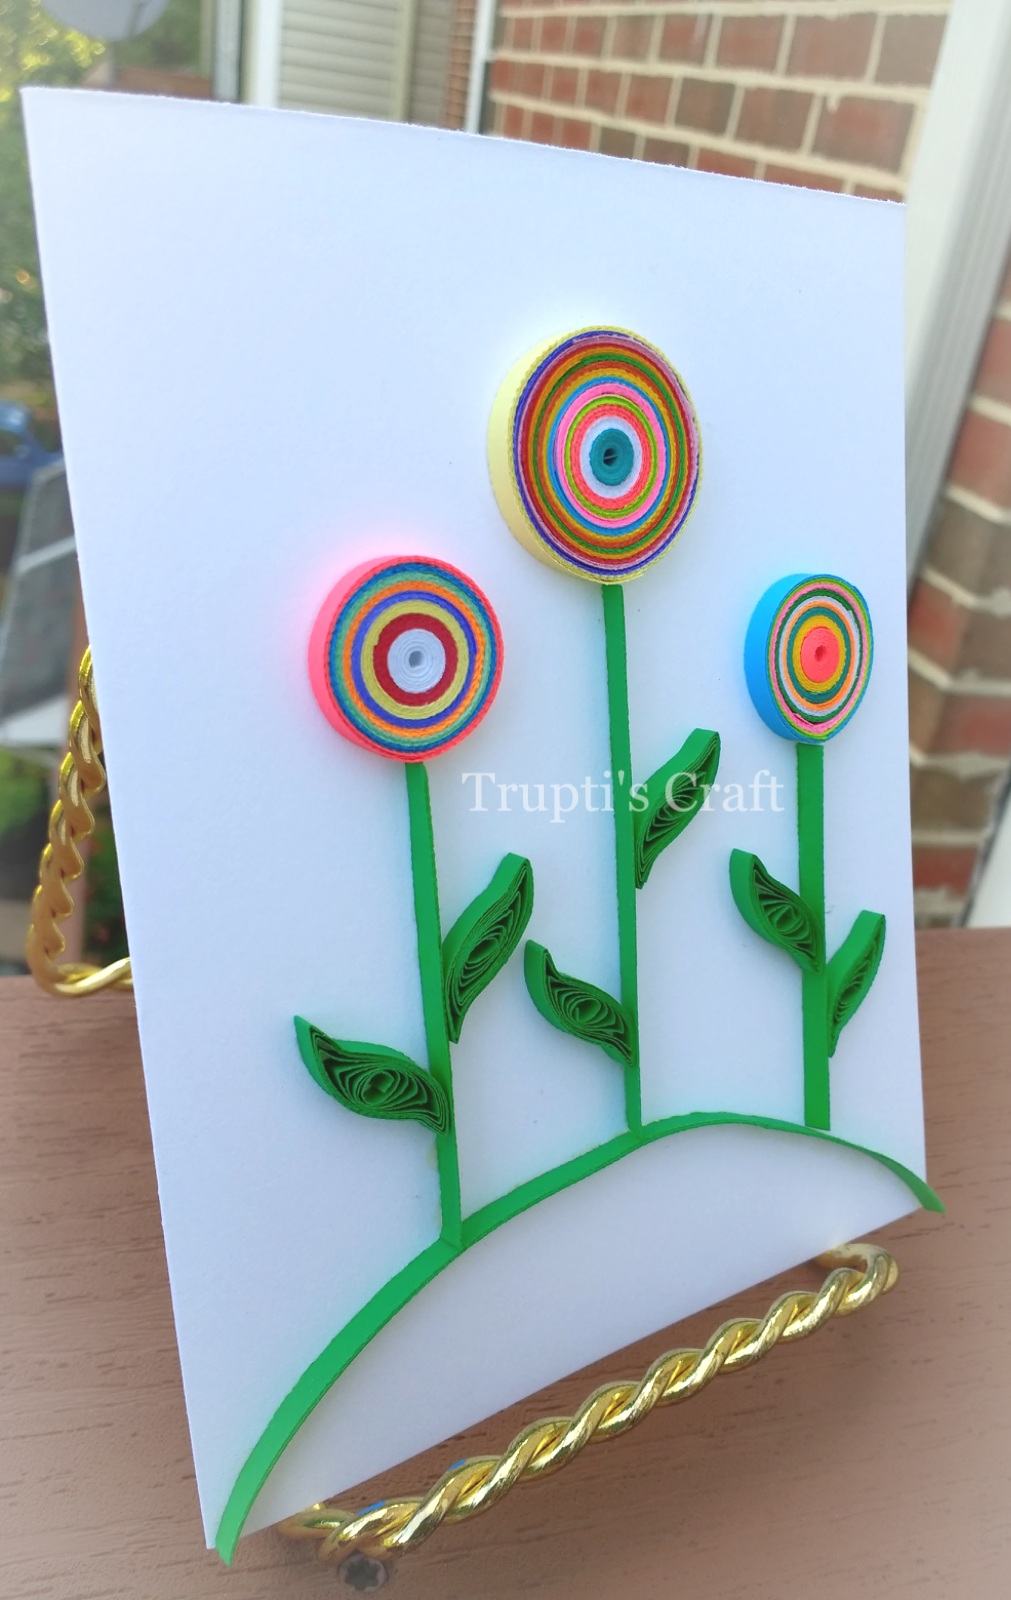 Truptis Craft Paper Quilling Lollipop Tree Greeting Cardwall